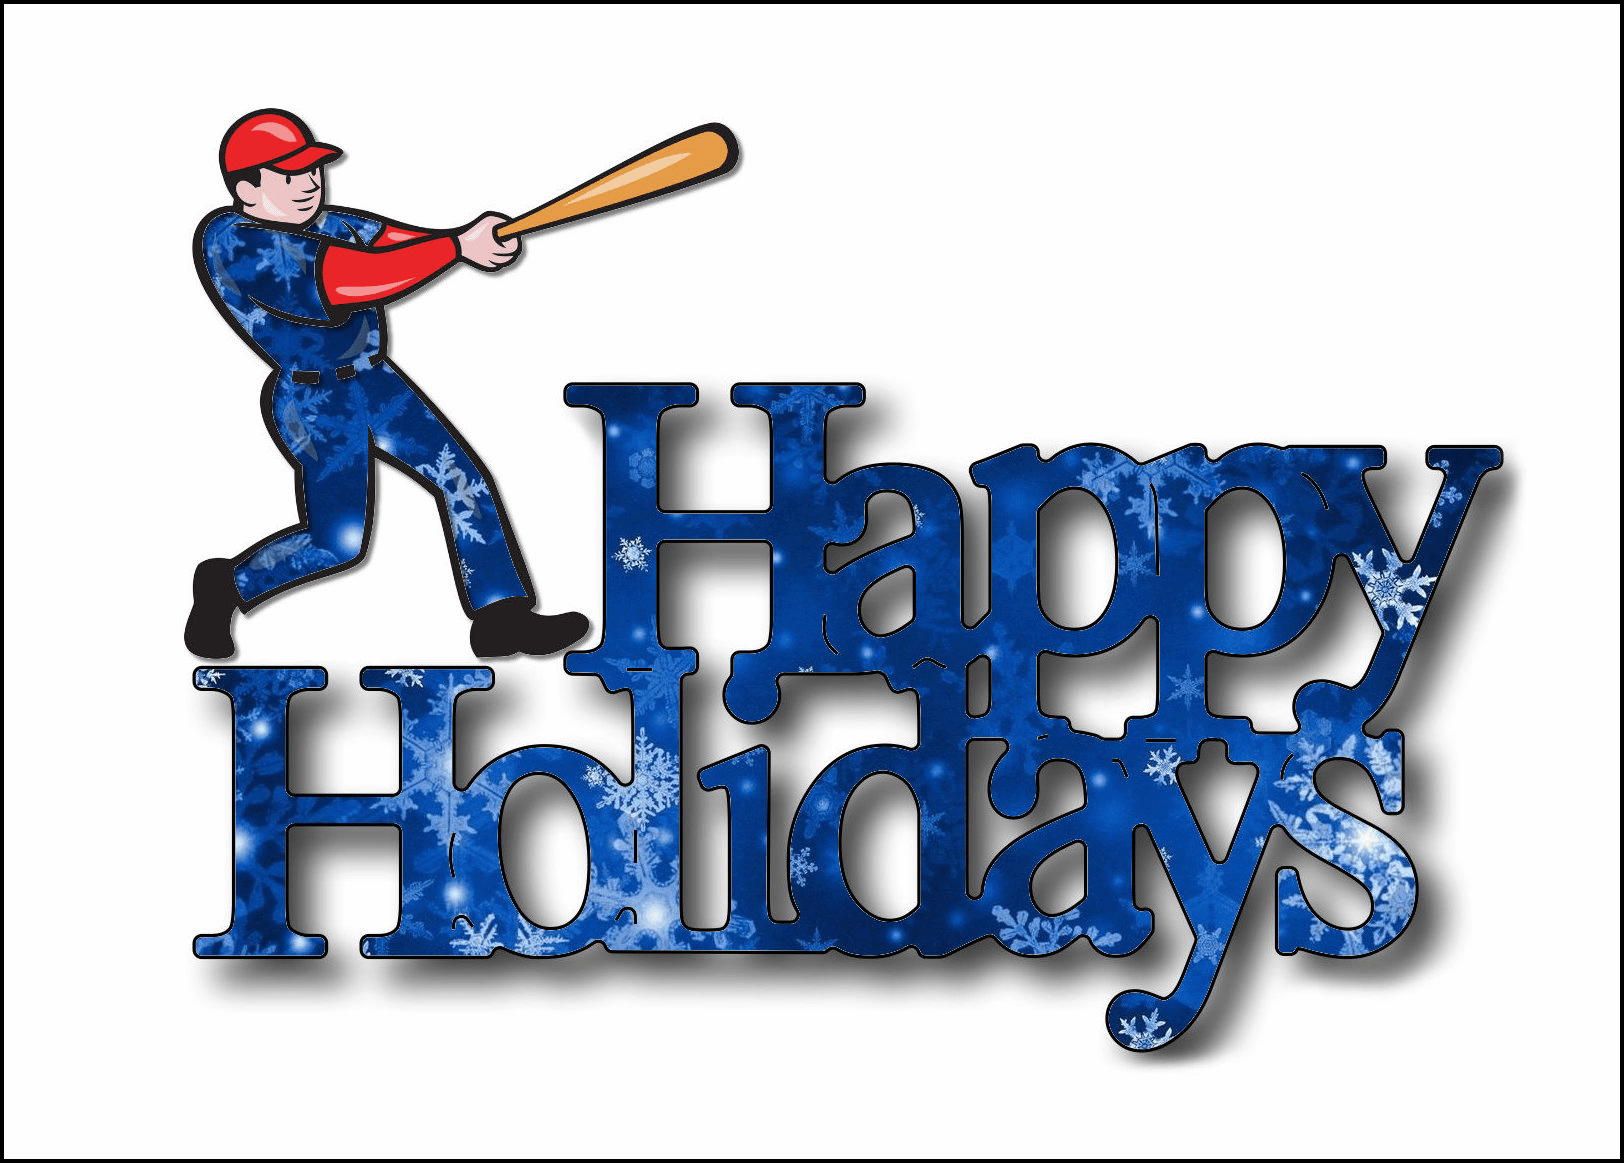 Baseball Batter Holiday Cards<br>PERSONALIZED FREE IF YOU BUY 5+ PACKS!